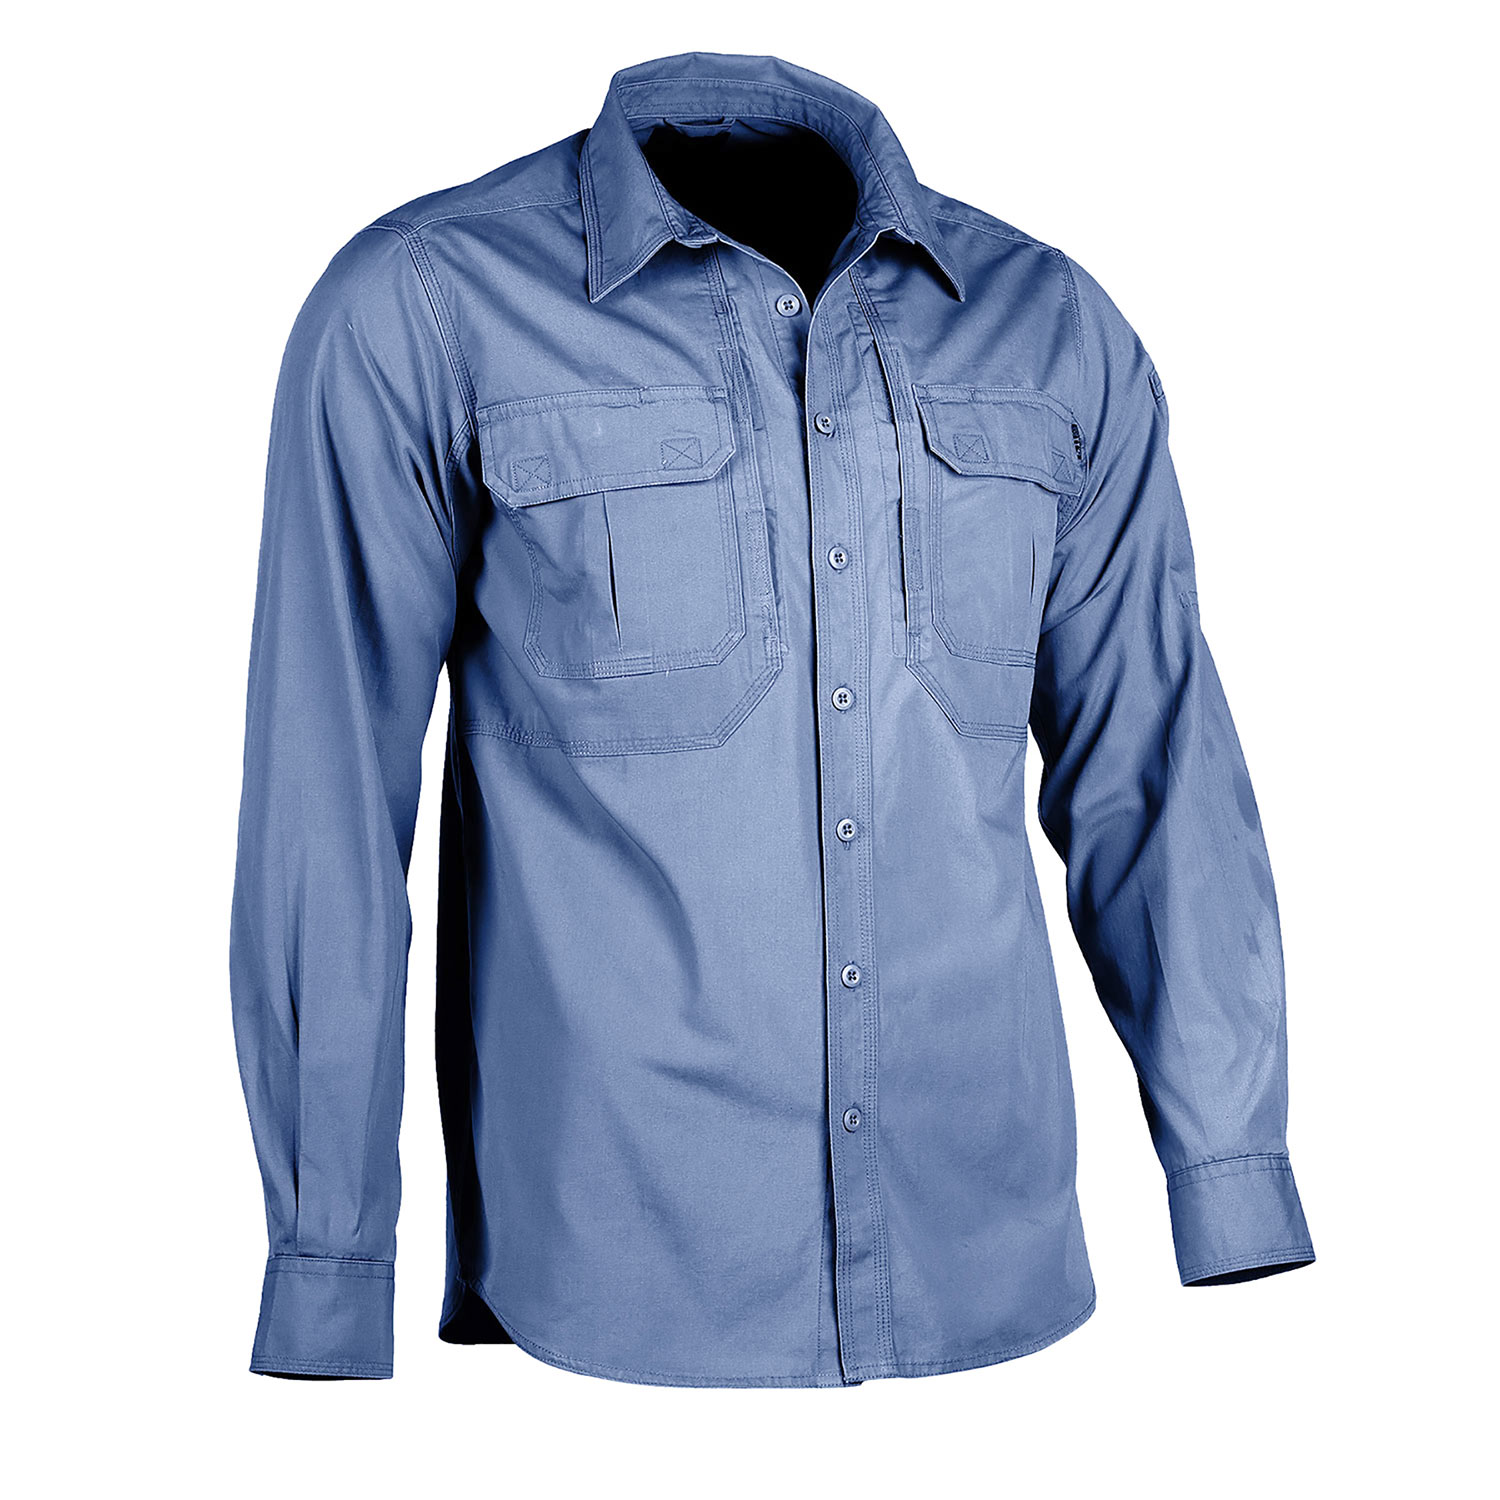 5.11 Expedition Long Sleeve Shirt